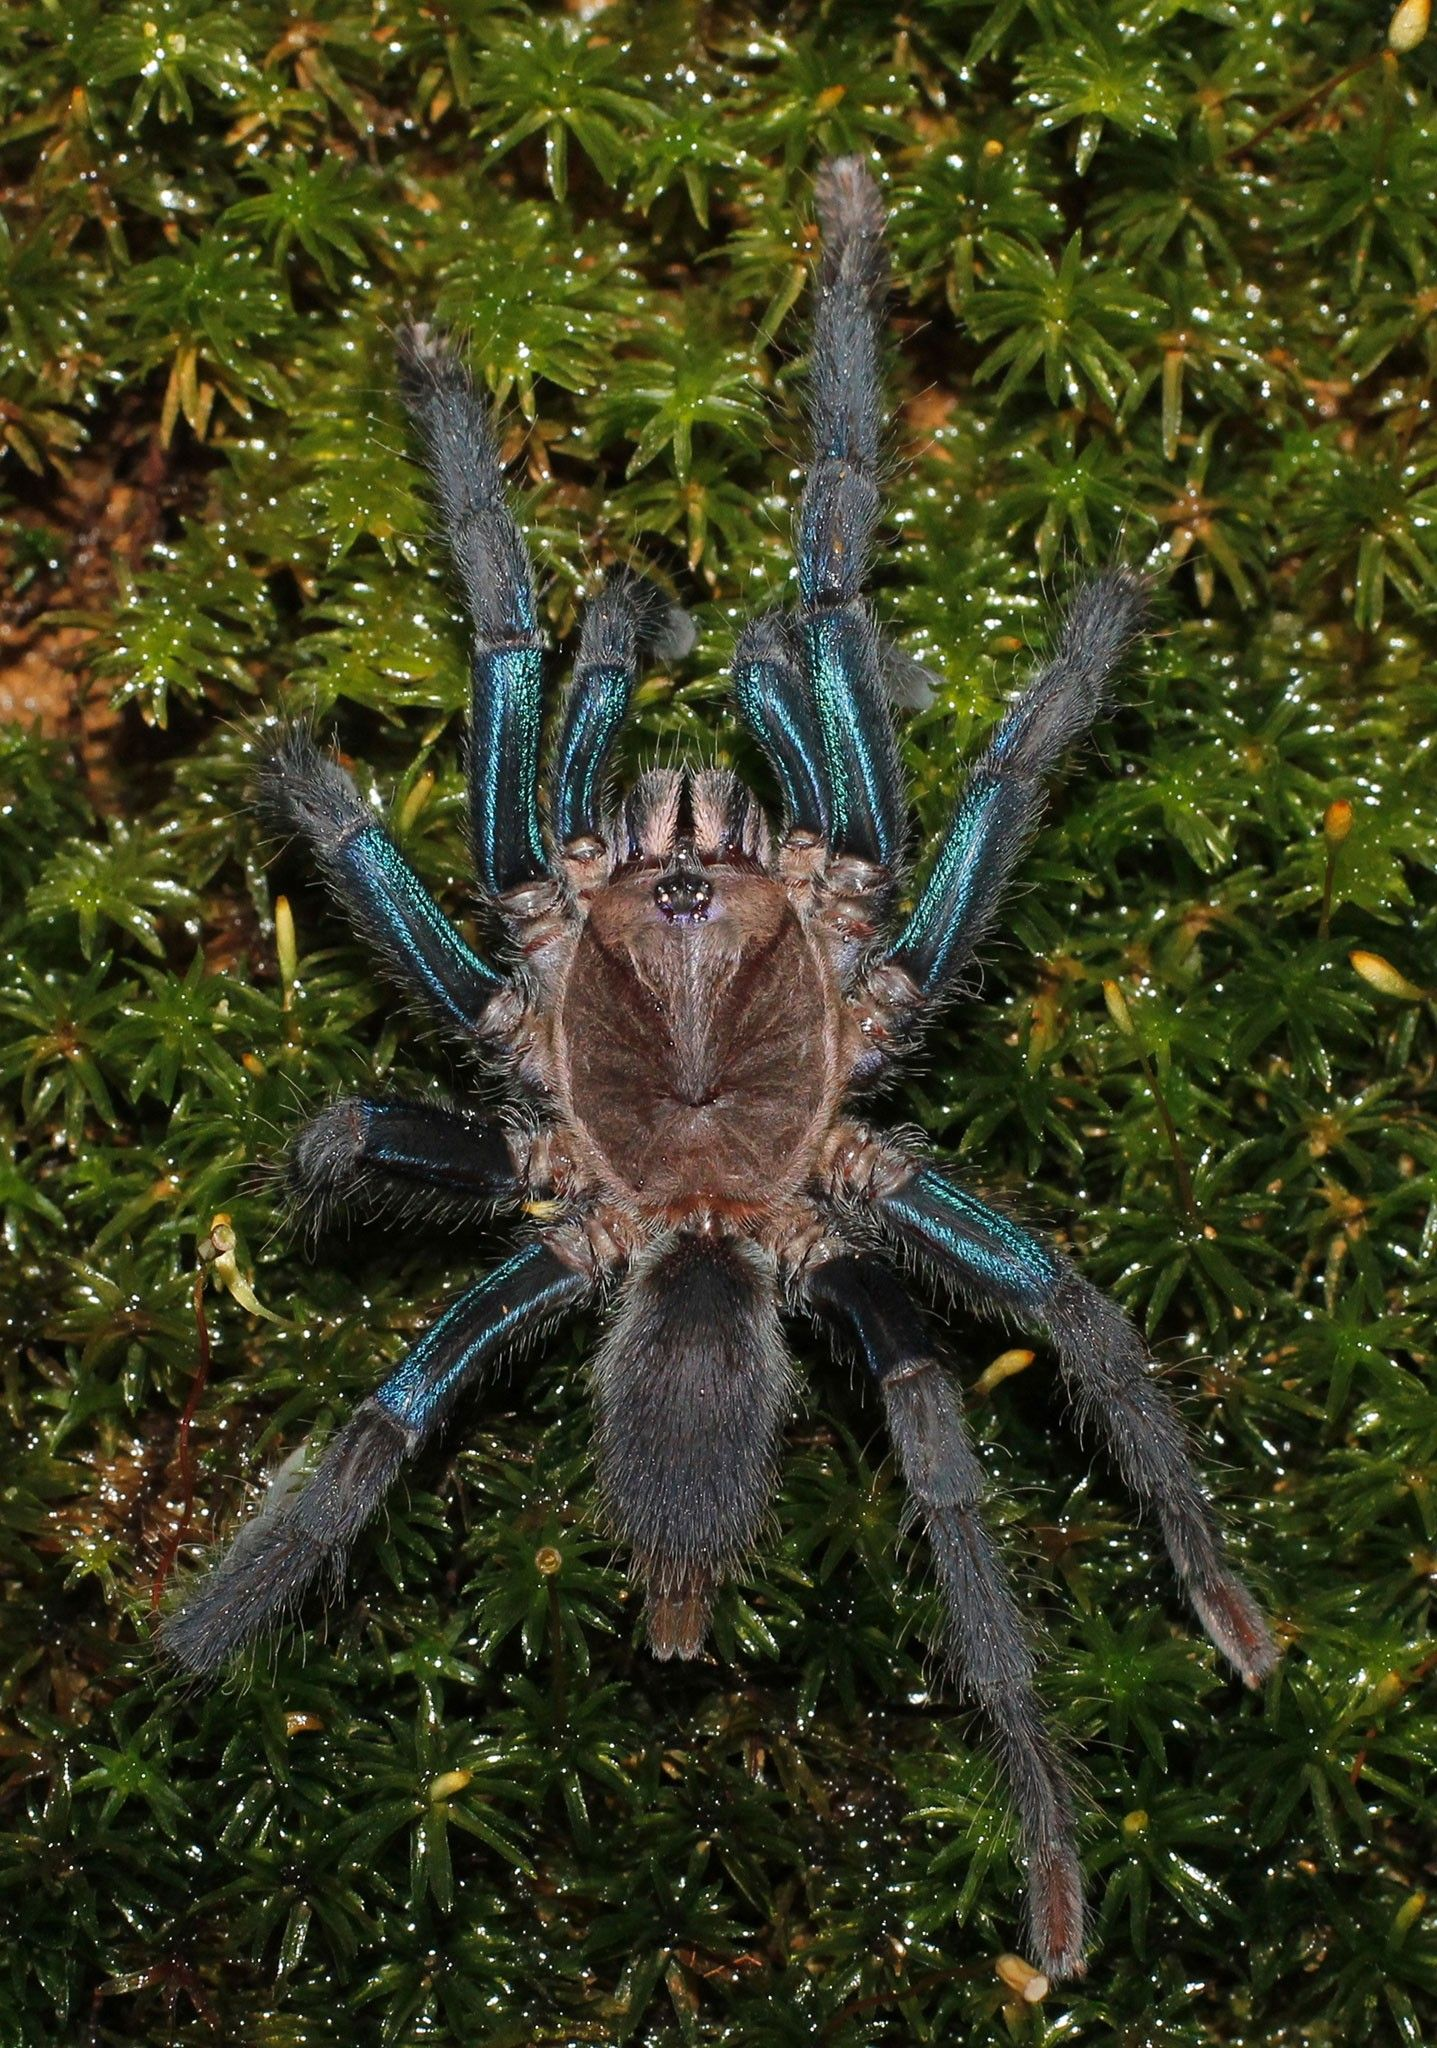 Shimmery blue tarantula discovered | National Geographic